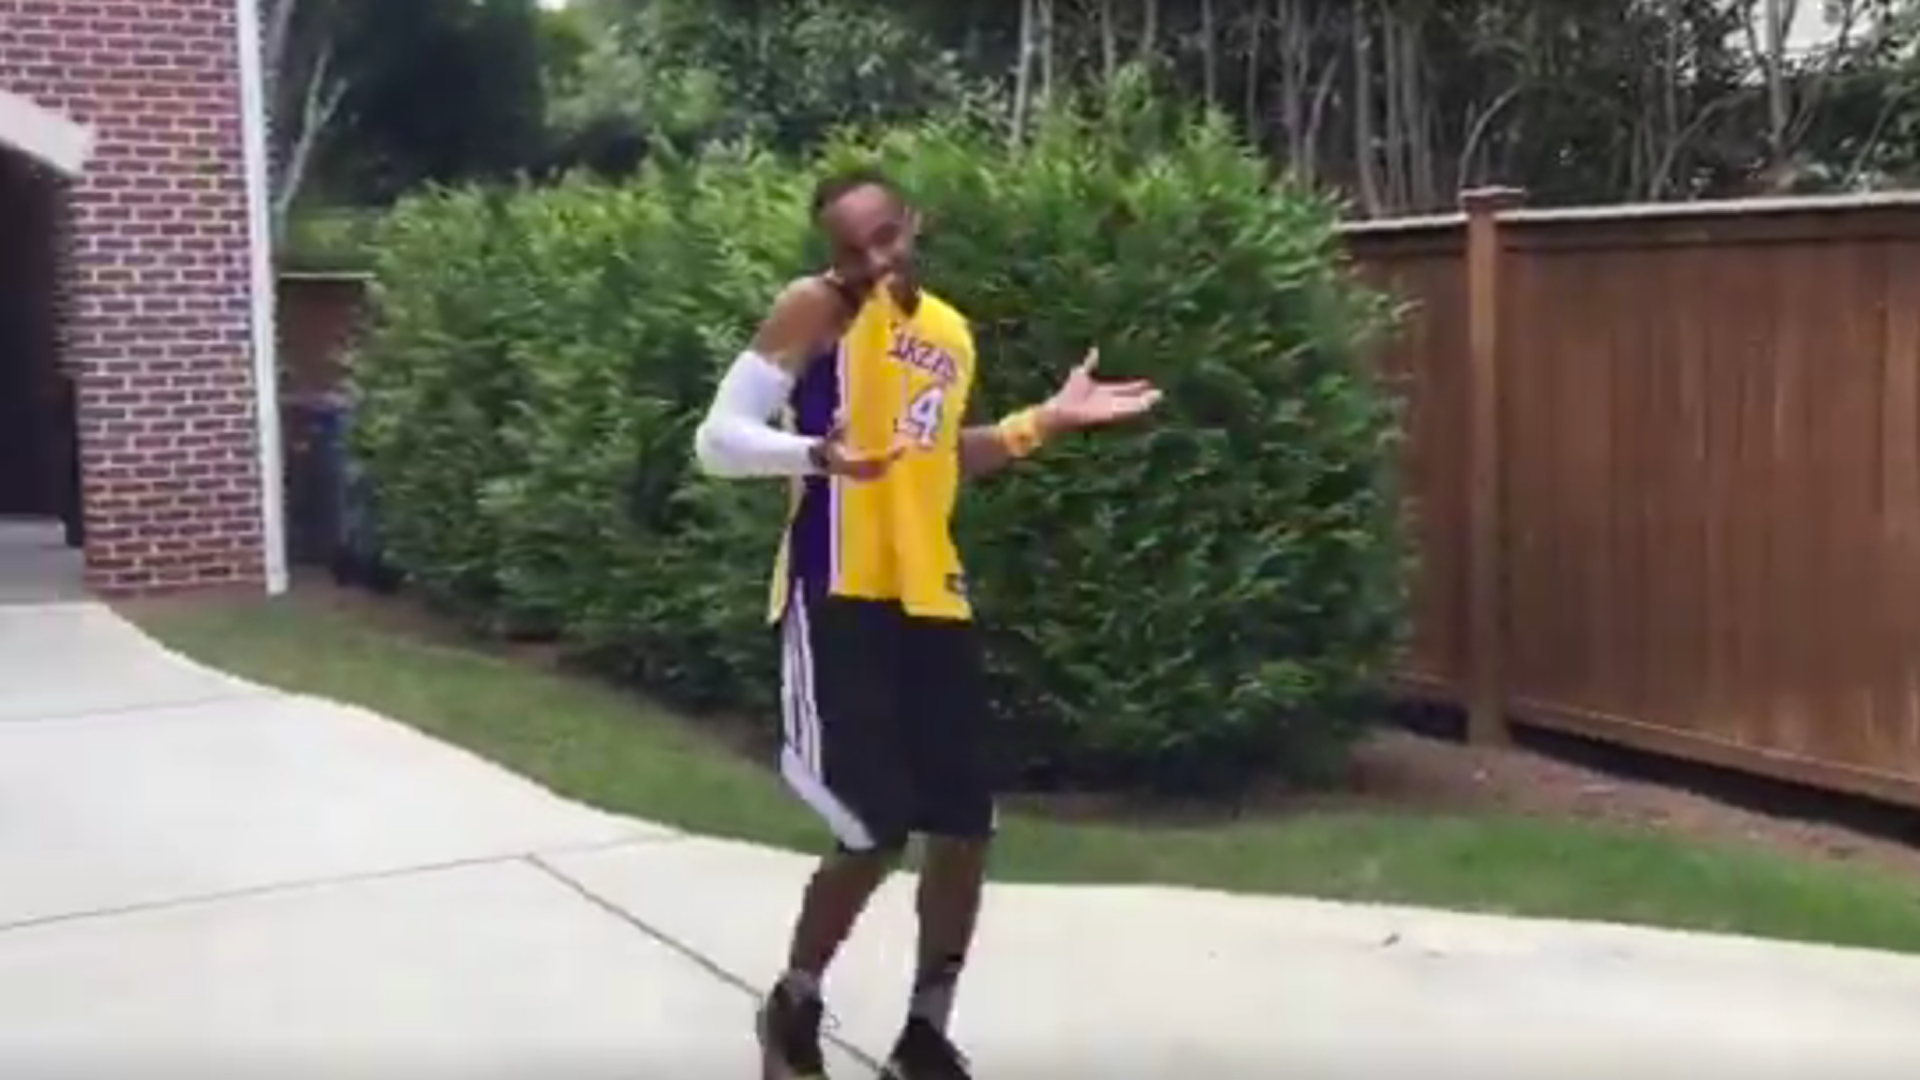 NBA impersonator Brandon Armstrong does a spot-on Kobe Bryant